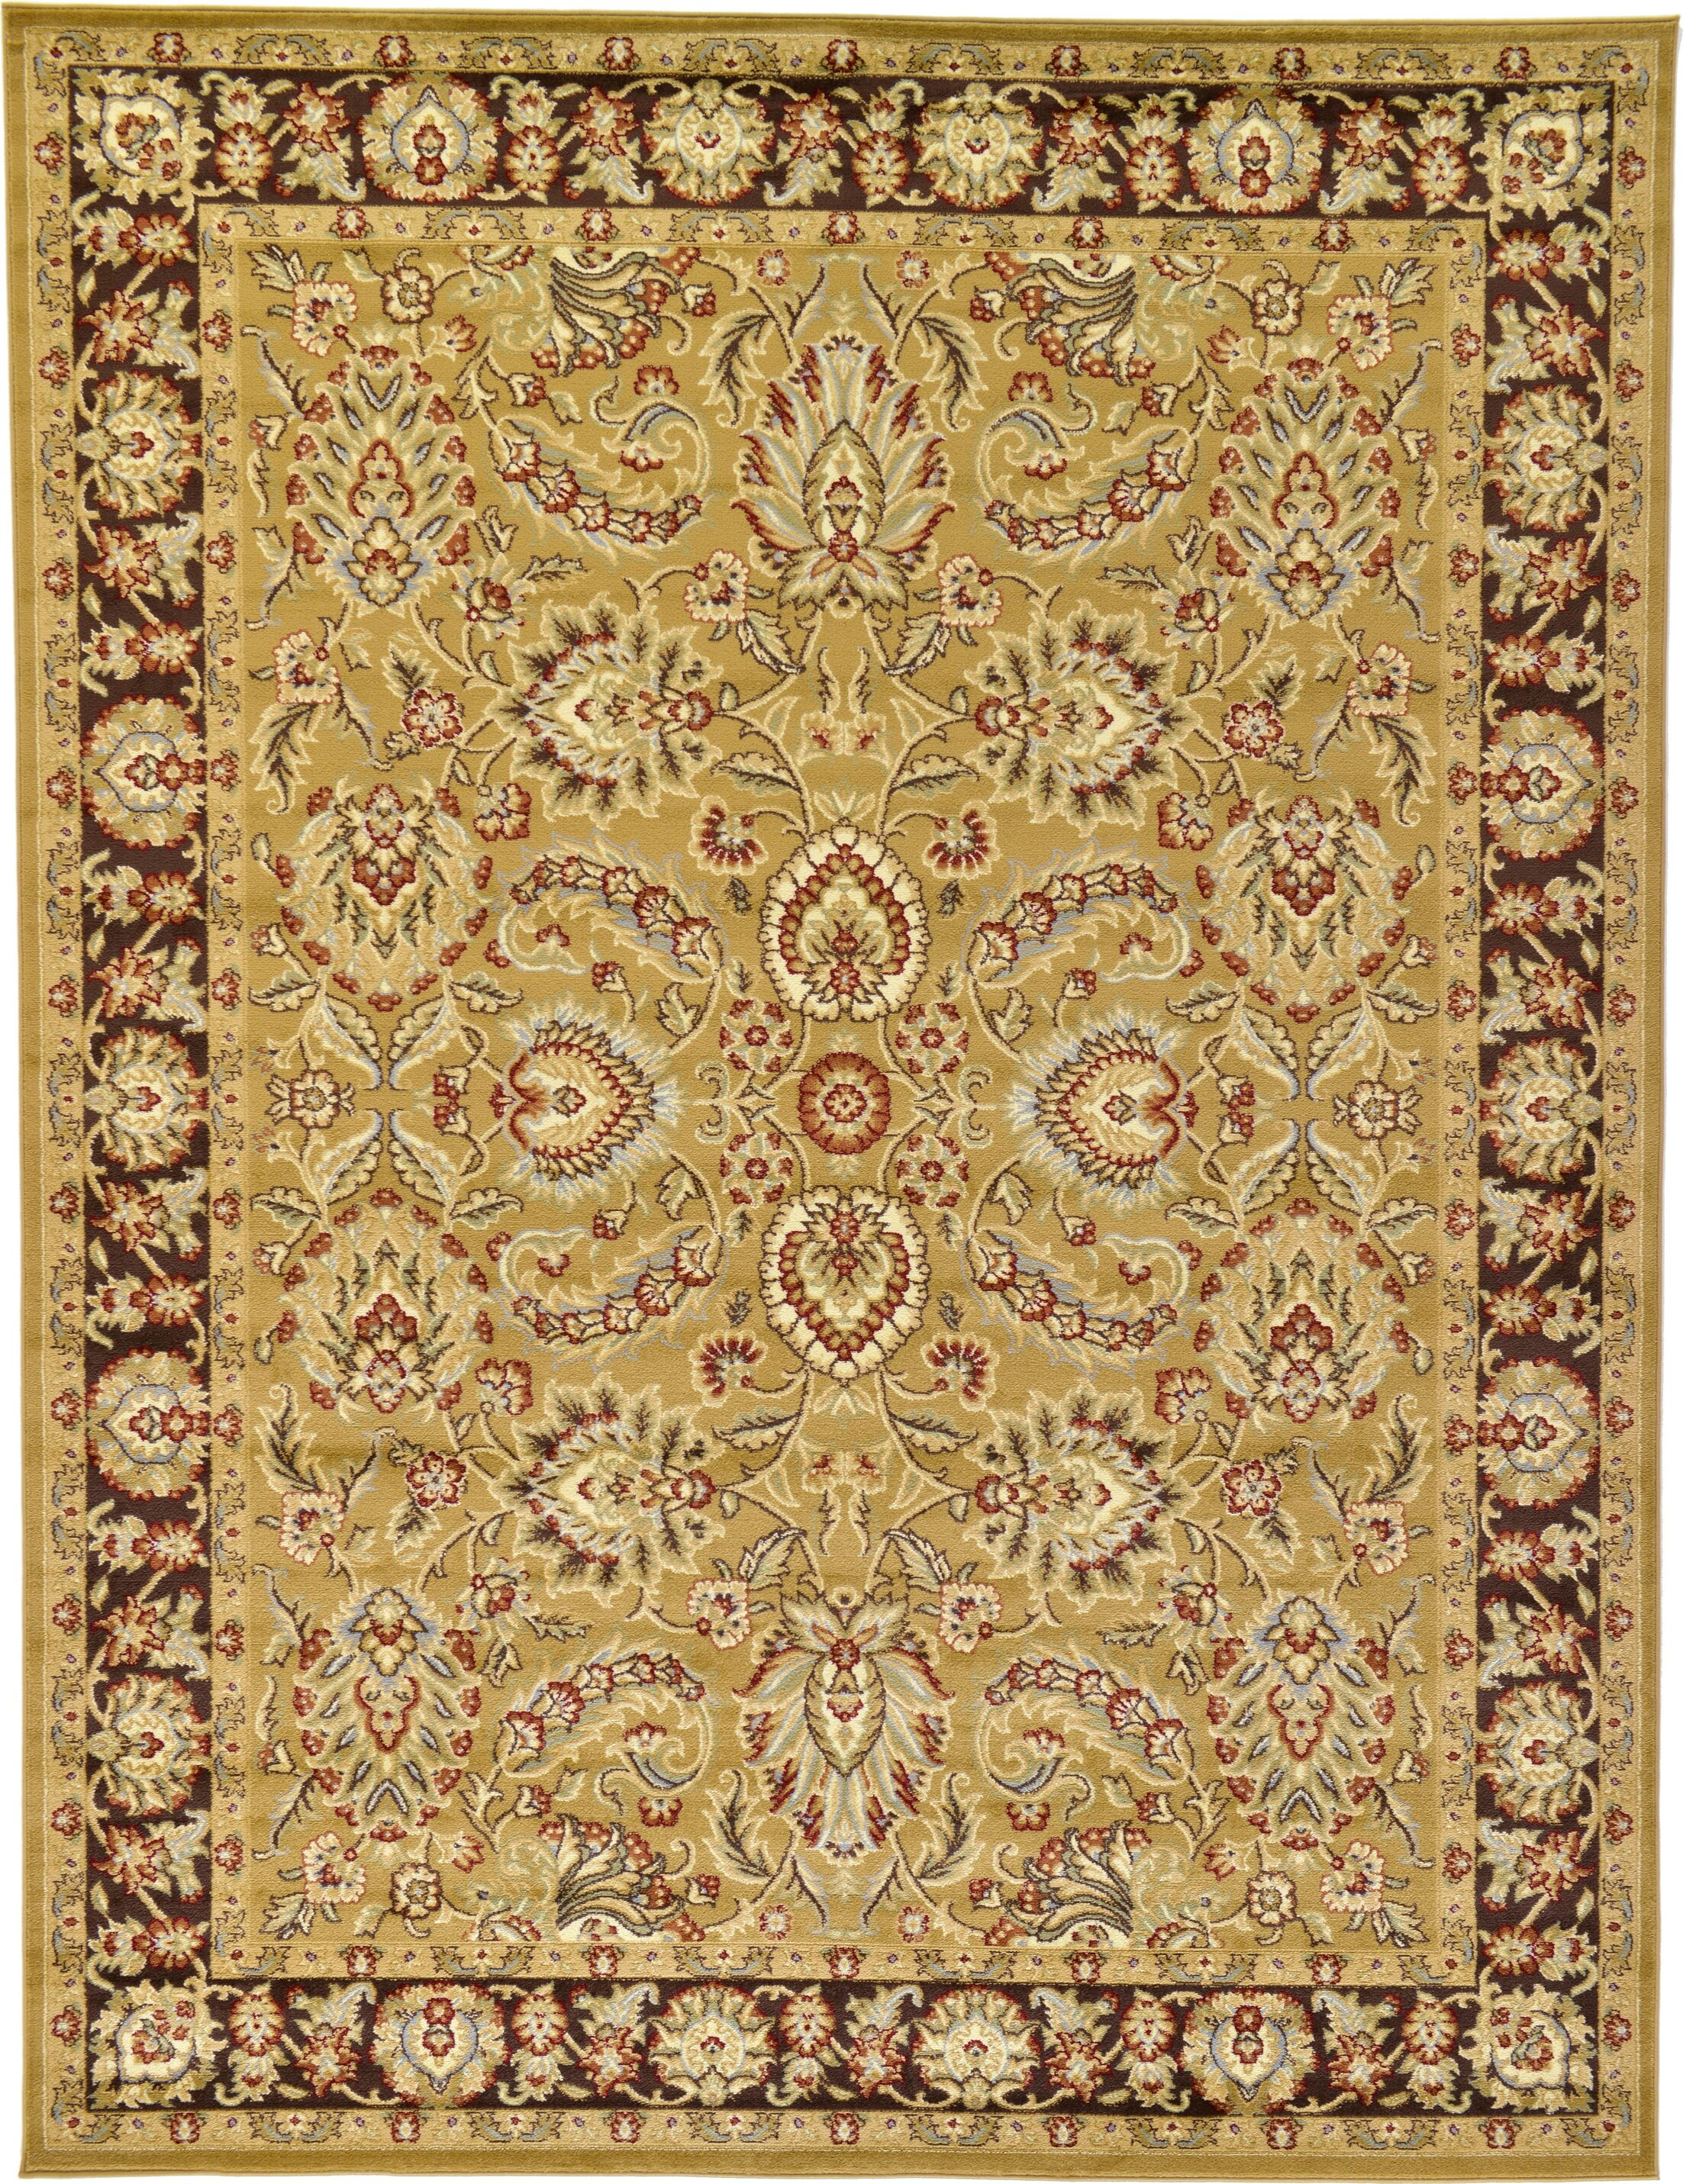 Fairmount Tan Oriental Area Rug Rug Size: Rectangle 9' x 12'